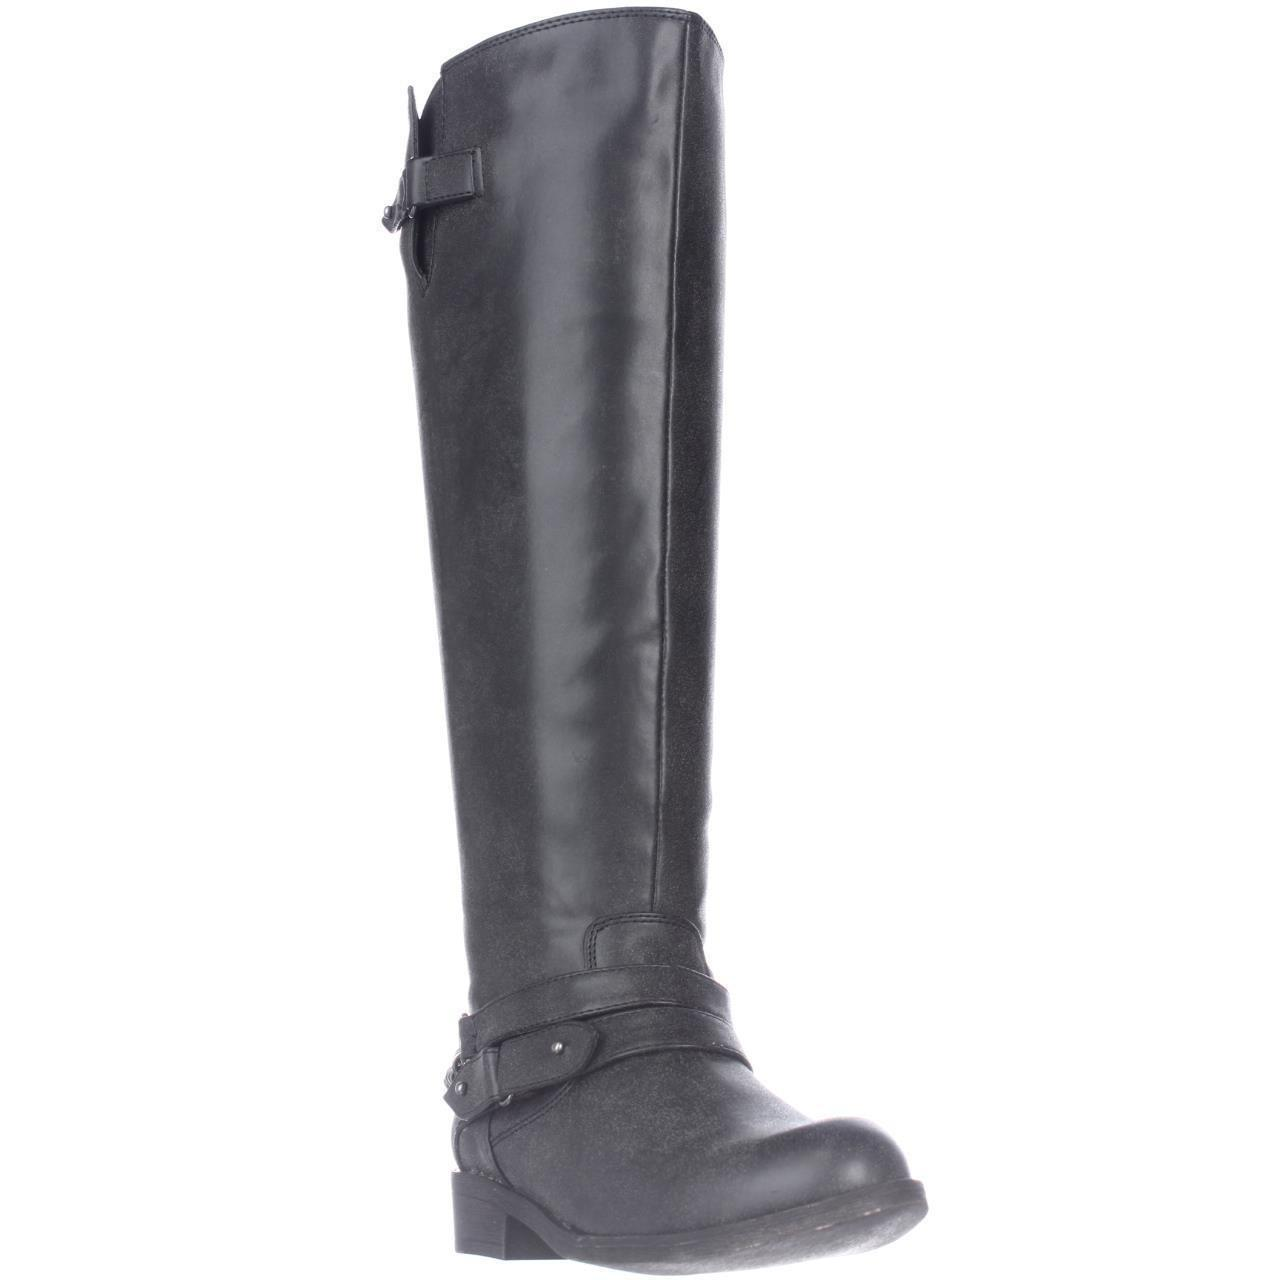 7e654a5a359c Lyst - Madden Girl Canyon Wide Calf Riding Boots, Black in Black